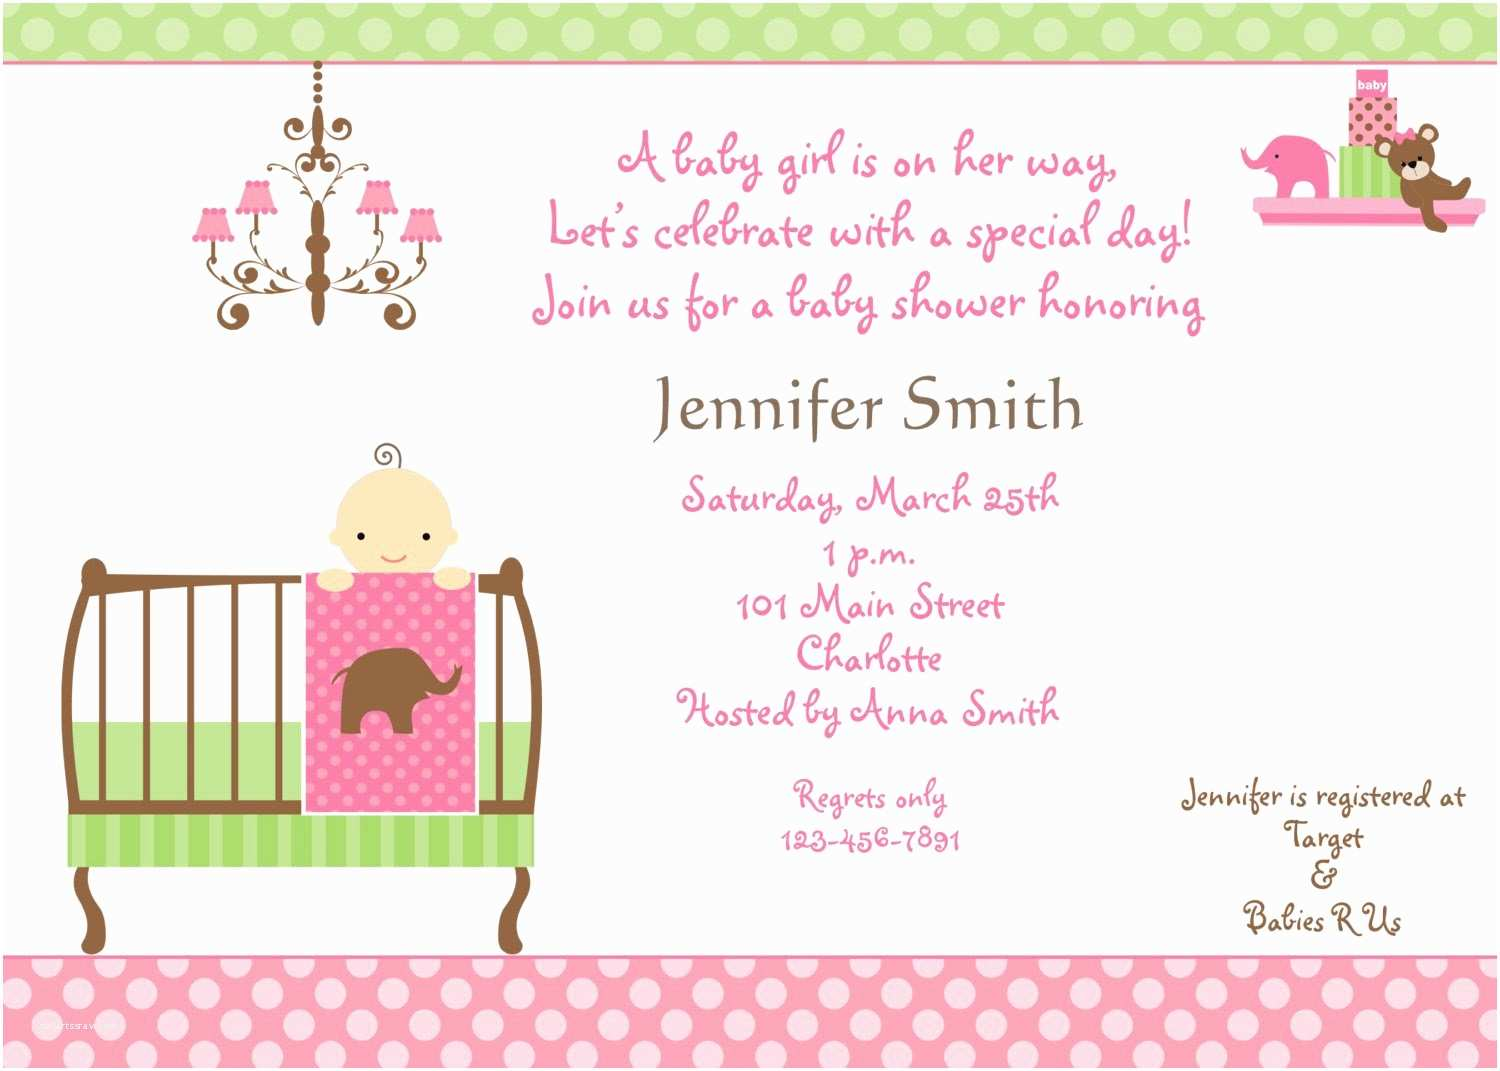 Baby Girl Shower Invitations Baby Shower Invitations for Girls Baby Shower